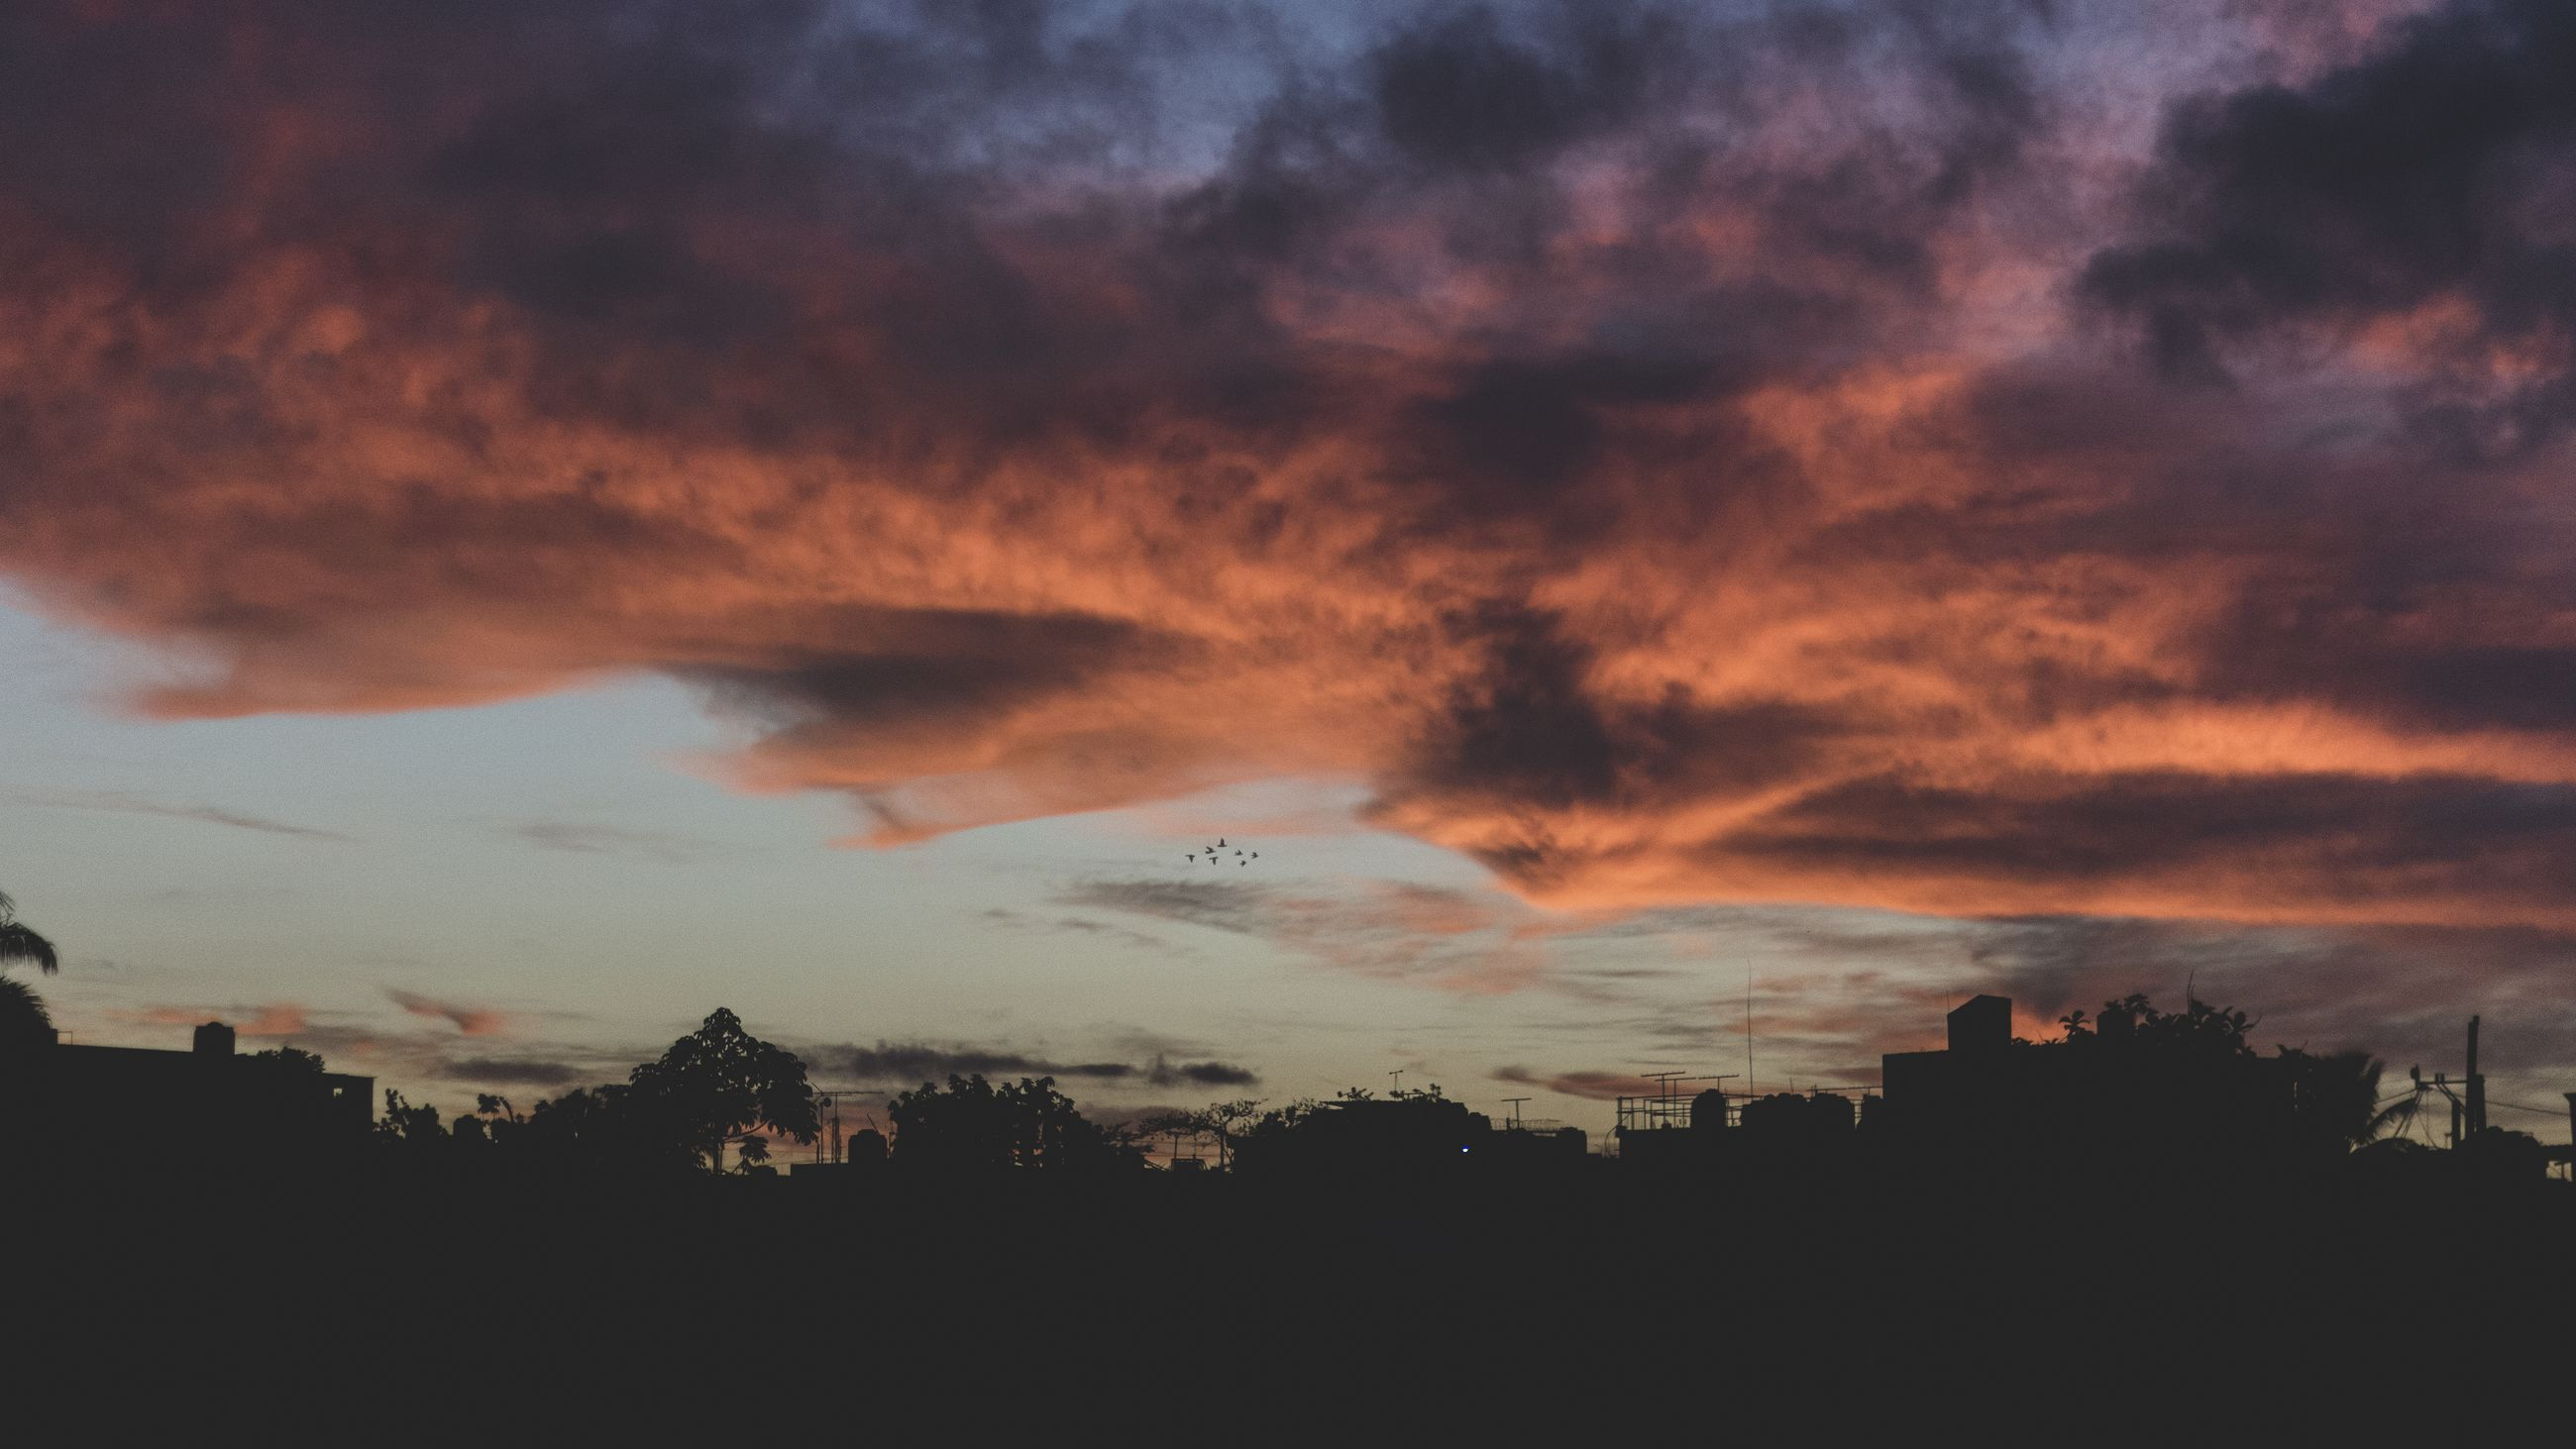 sky, cloud, sunset, beauty in nature, nature, scenics - nature, environment, silhouette, dramatic sky, afterglow, landscape, dawn, no people, architecture, tranquility, evening, outdoors, tranquil scene, red sky at morning, cloudscape, orange color, horizon, building exterior, building, built structure, idyllic, tree, storm, dark